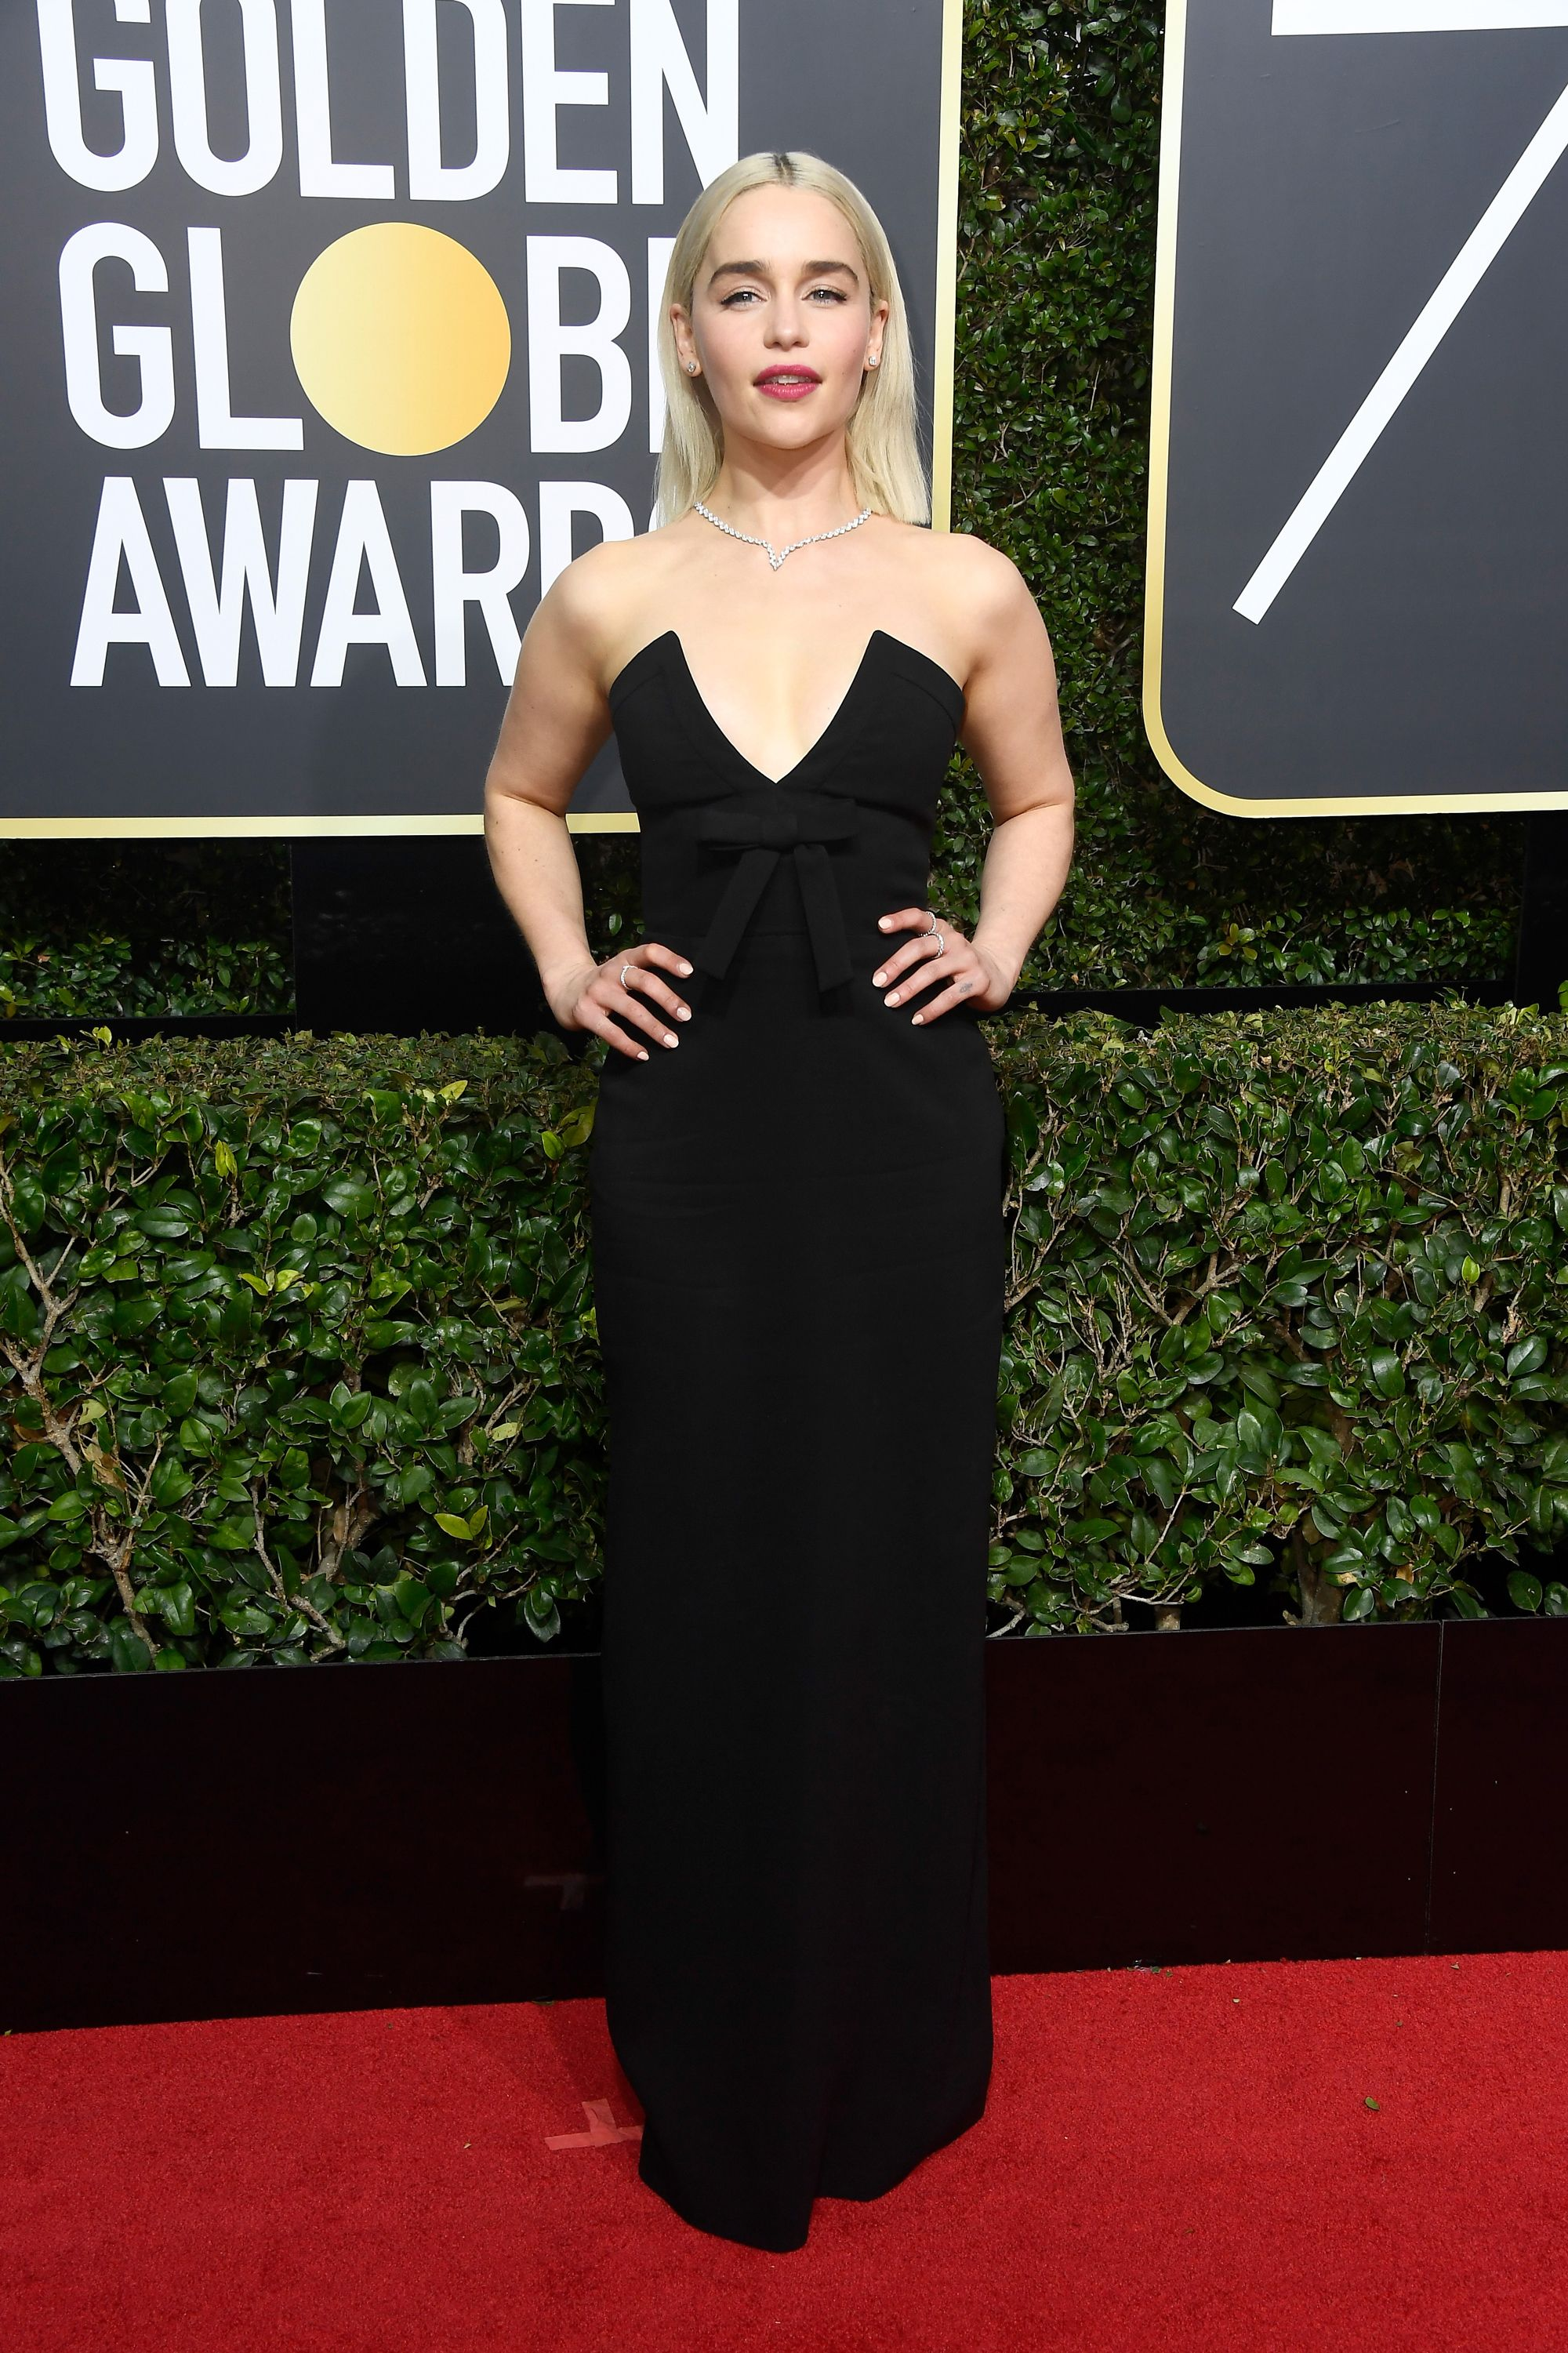 b097e267dee Emilia Clarke s Khaleesi-Blonde Hair Lit Up the Golden Globes Red Carpet